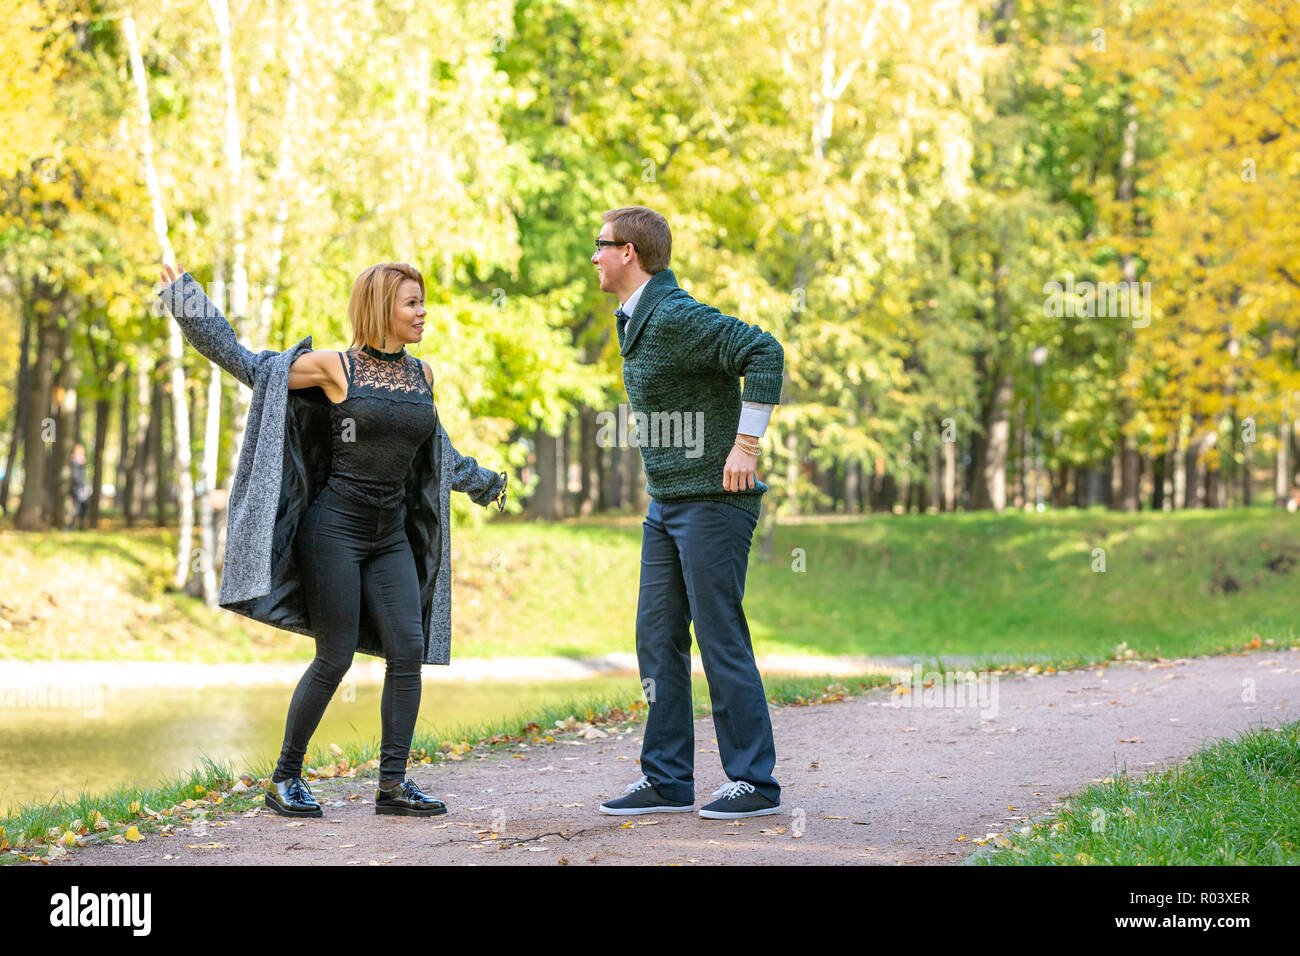 Couple talking seriously outdoors in a park with a green background Stock Photo